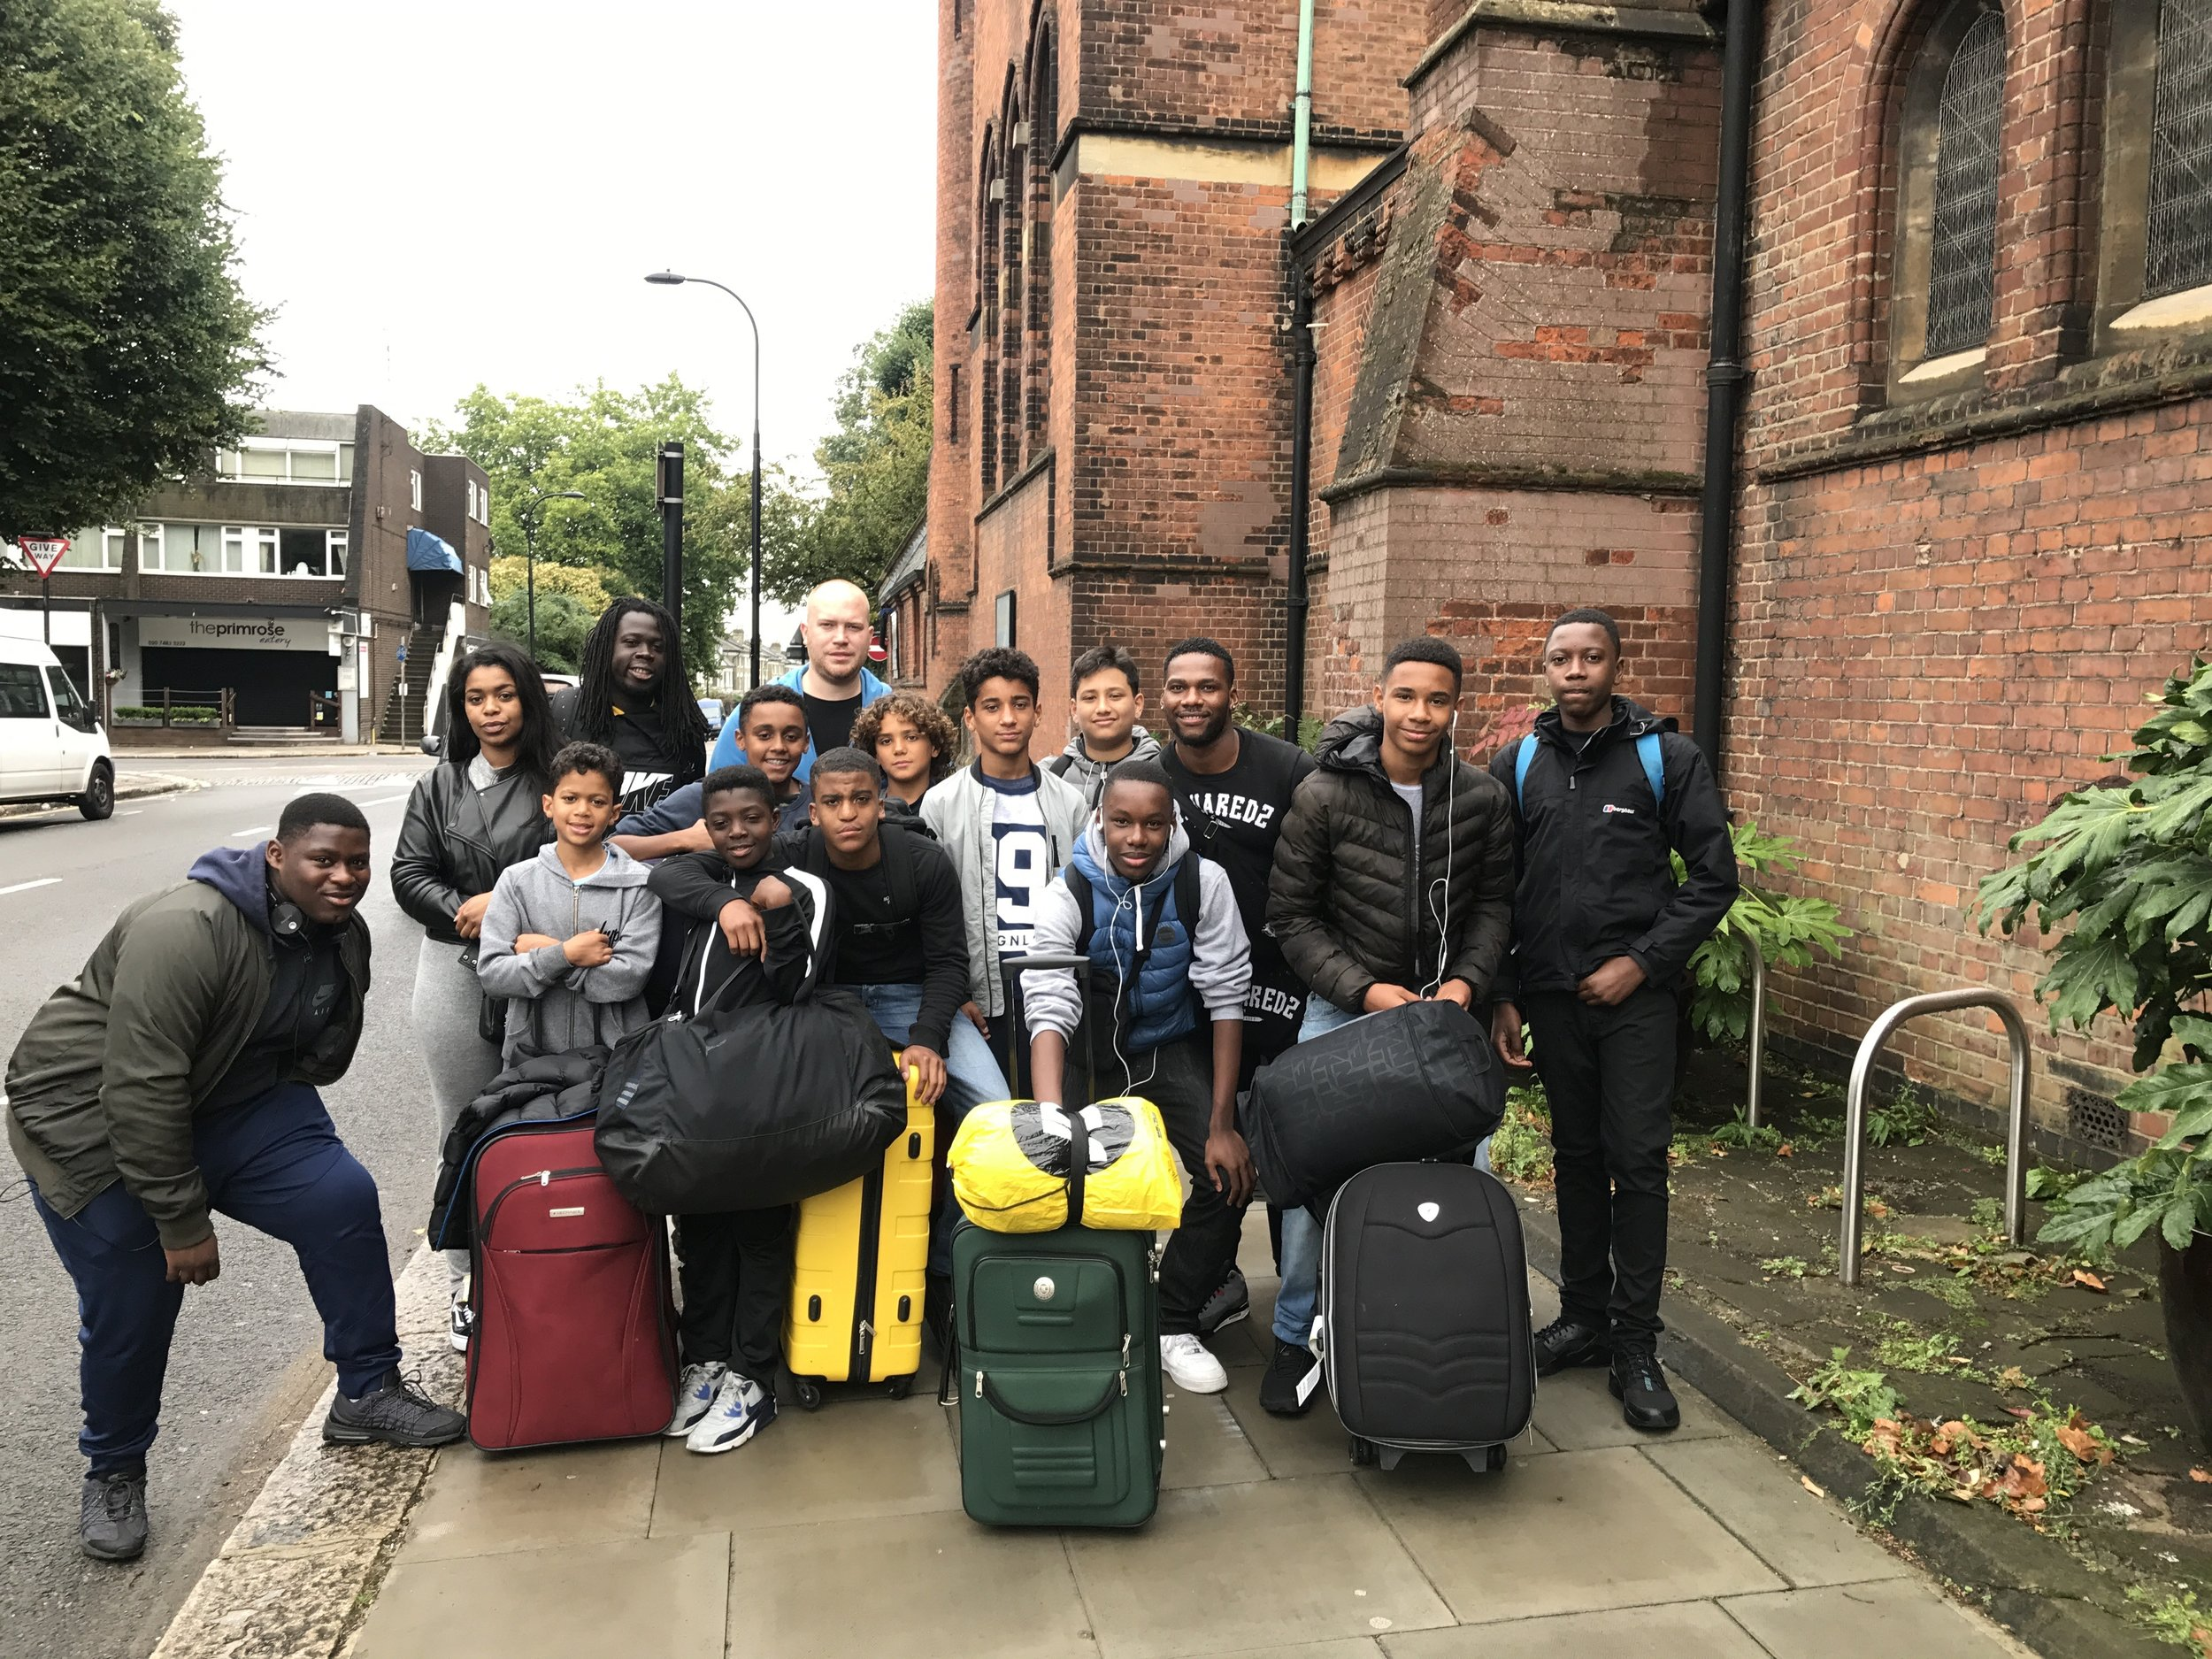 Youth Work (SMCCT) - St Mary's Centre (SMCCT) works with young people aged 12-25 at risk of exclusion, violence, kidnap and death.We are on call 24x7x365. No other local youth project offers this level of support.We mentor in housing estates, schools, pupil referral units and prisons.Our priority is always violence reduction.We have worked out of St Mary's Church, Elsworthy Road for 12 years. We are now working to secure our future and recruit new youth workers for St Mary's life-saving work.